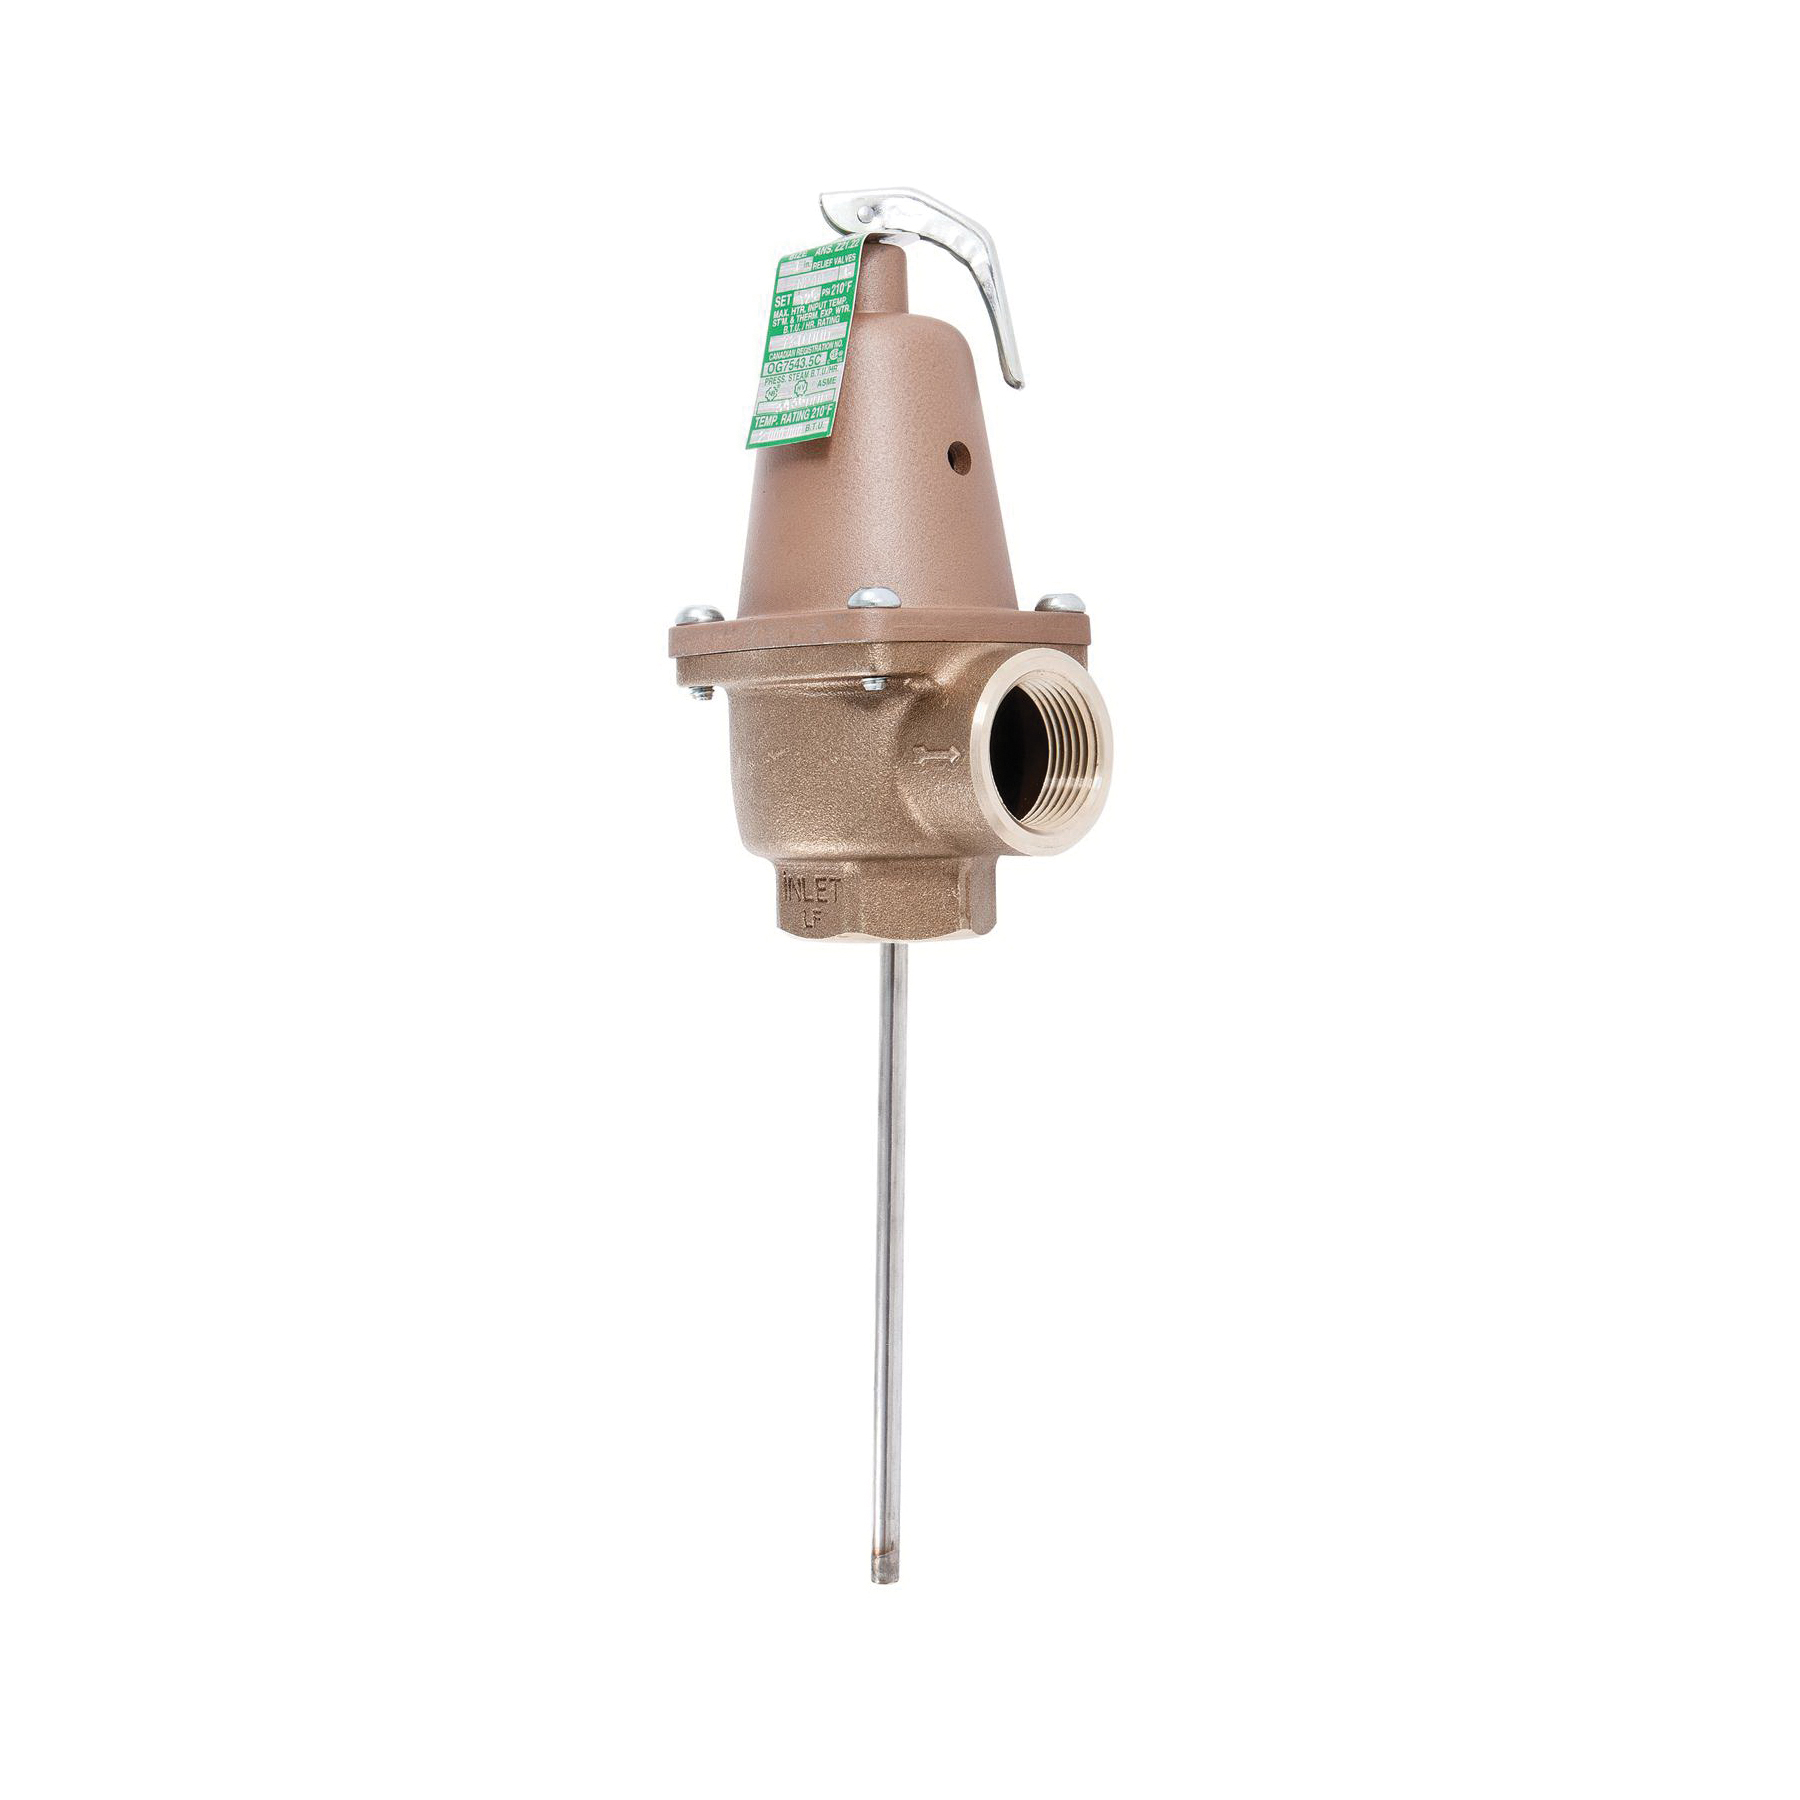 WATTS® 0556019 LFN240X Automatic Reseating Temperature and Pressure Relief Valve, 1 in, FNPT, 113 psi, Bronze Body